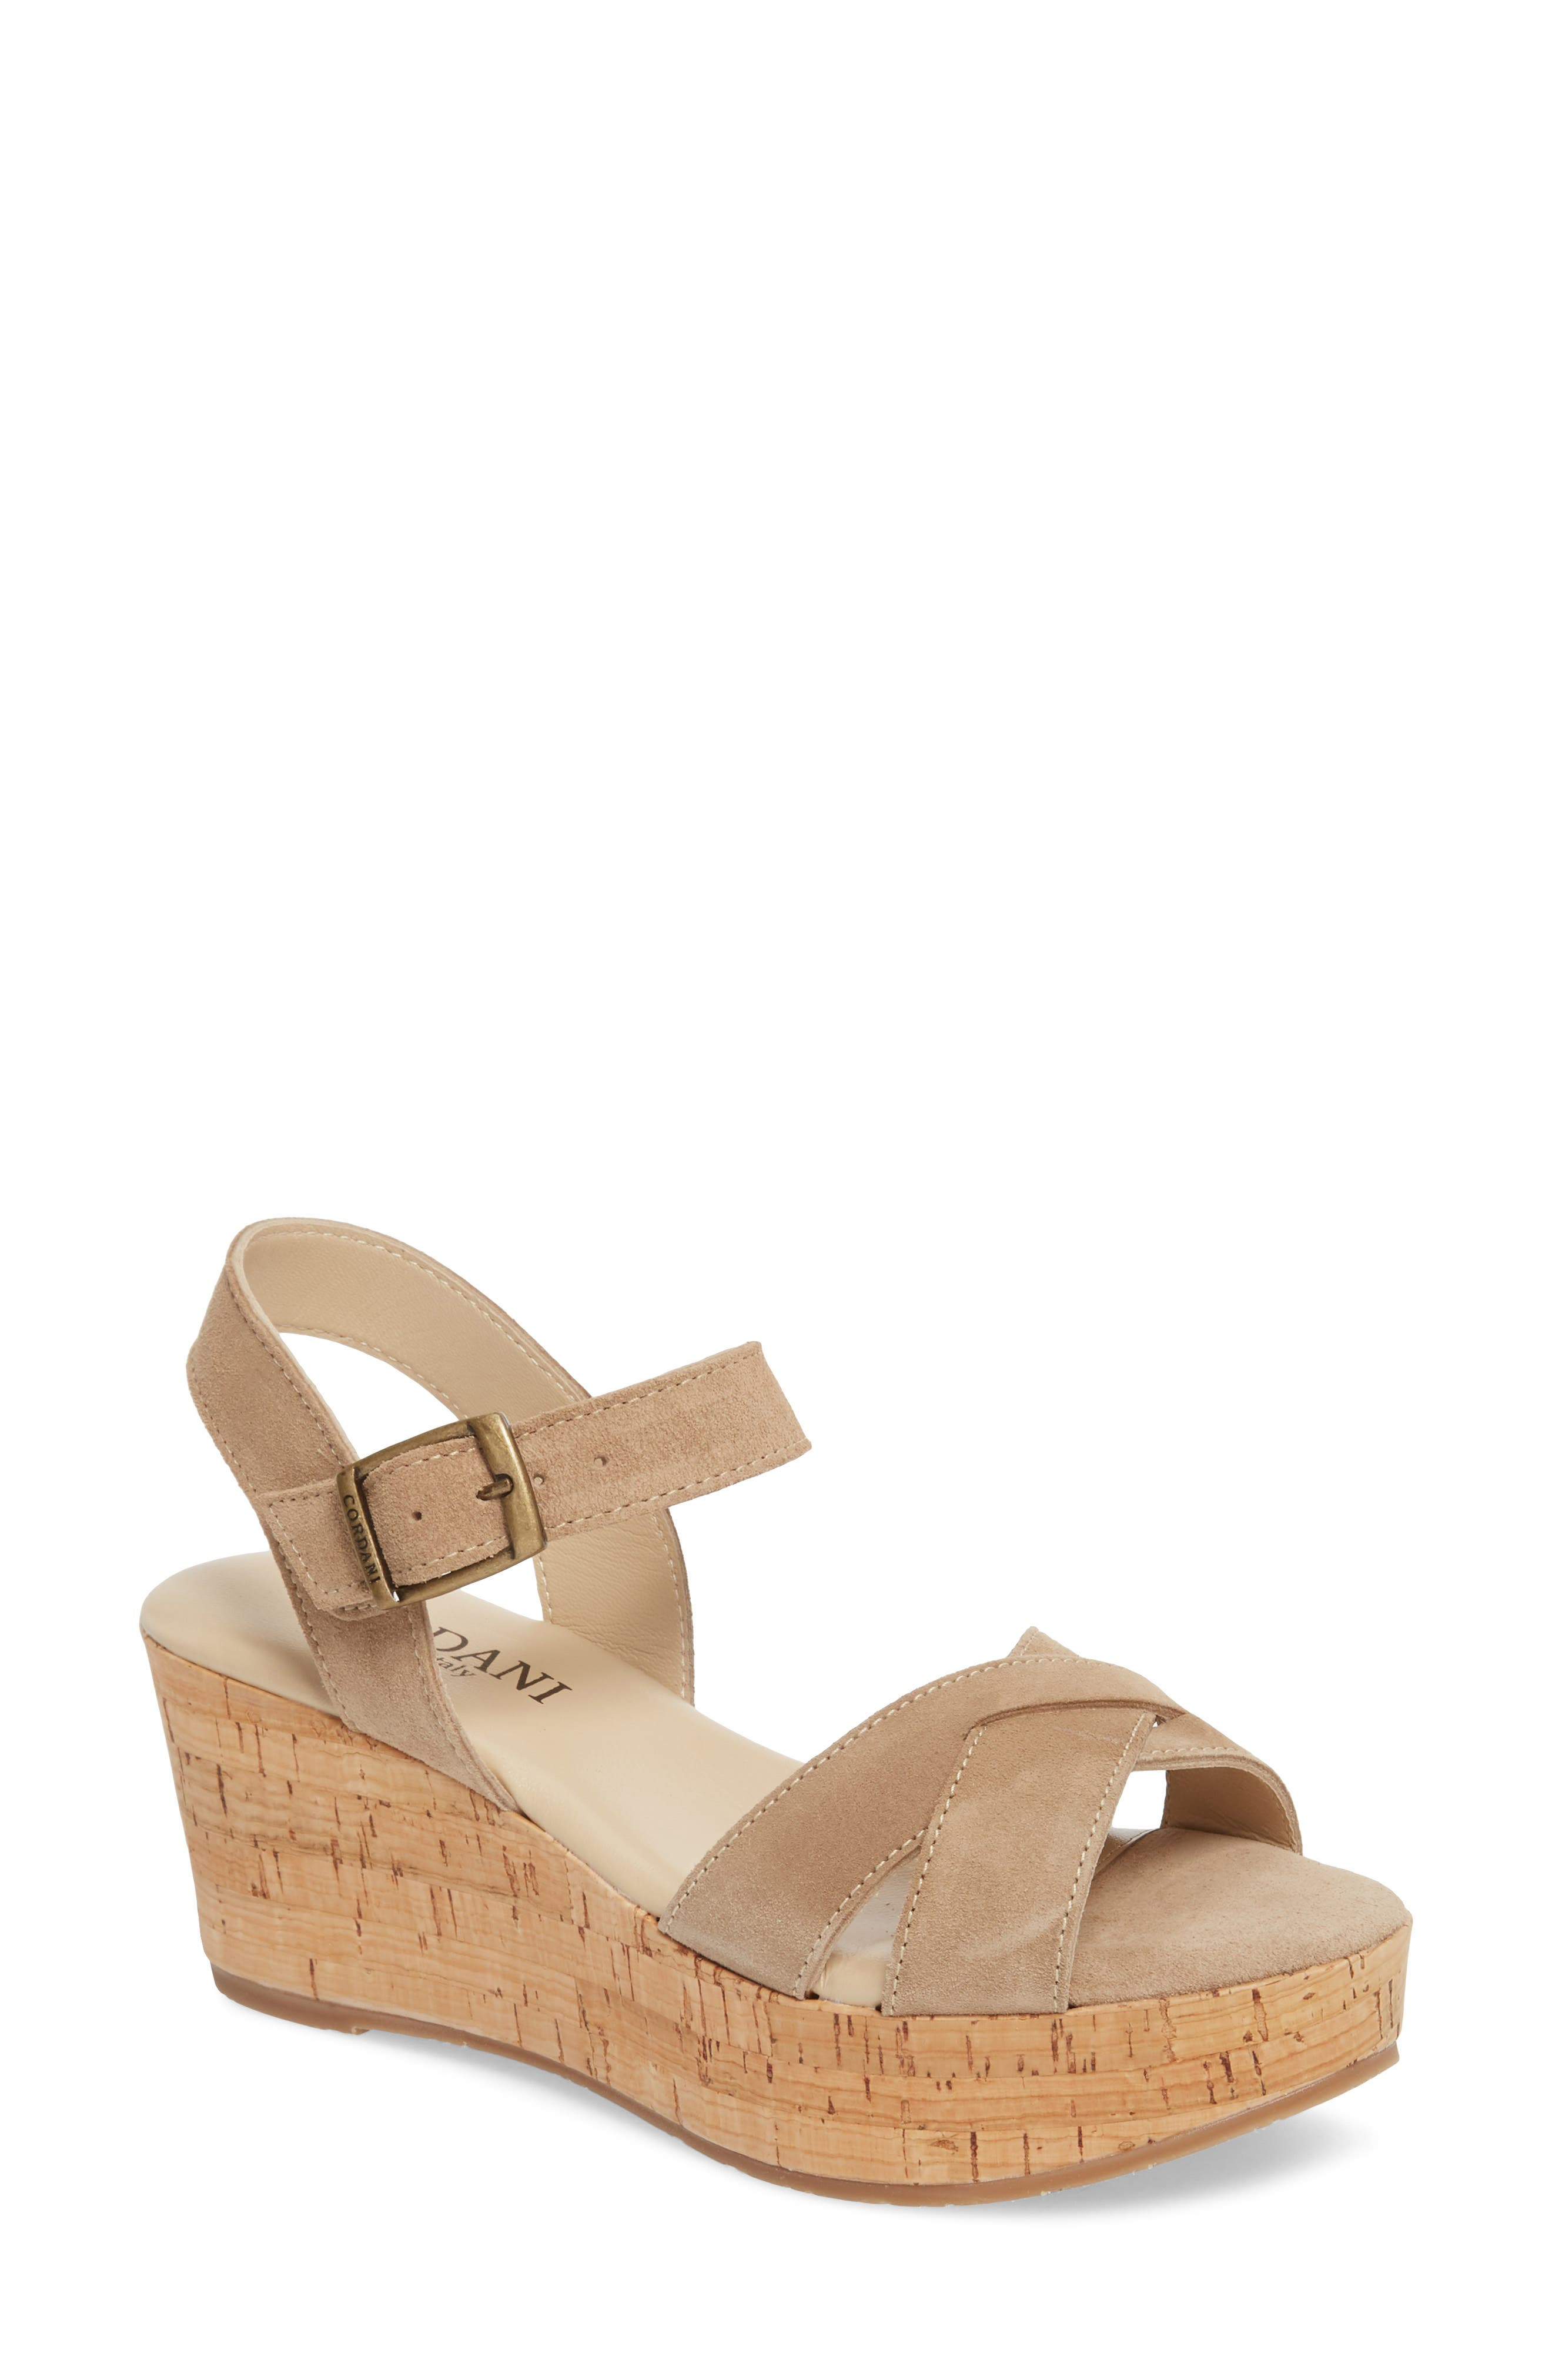 Candy Wedge Sandal,                         Main,                         color, CORDA SUEDE